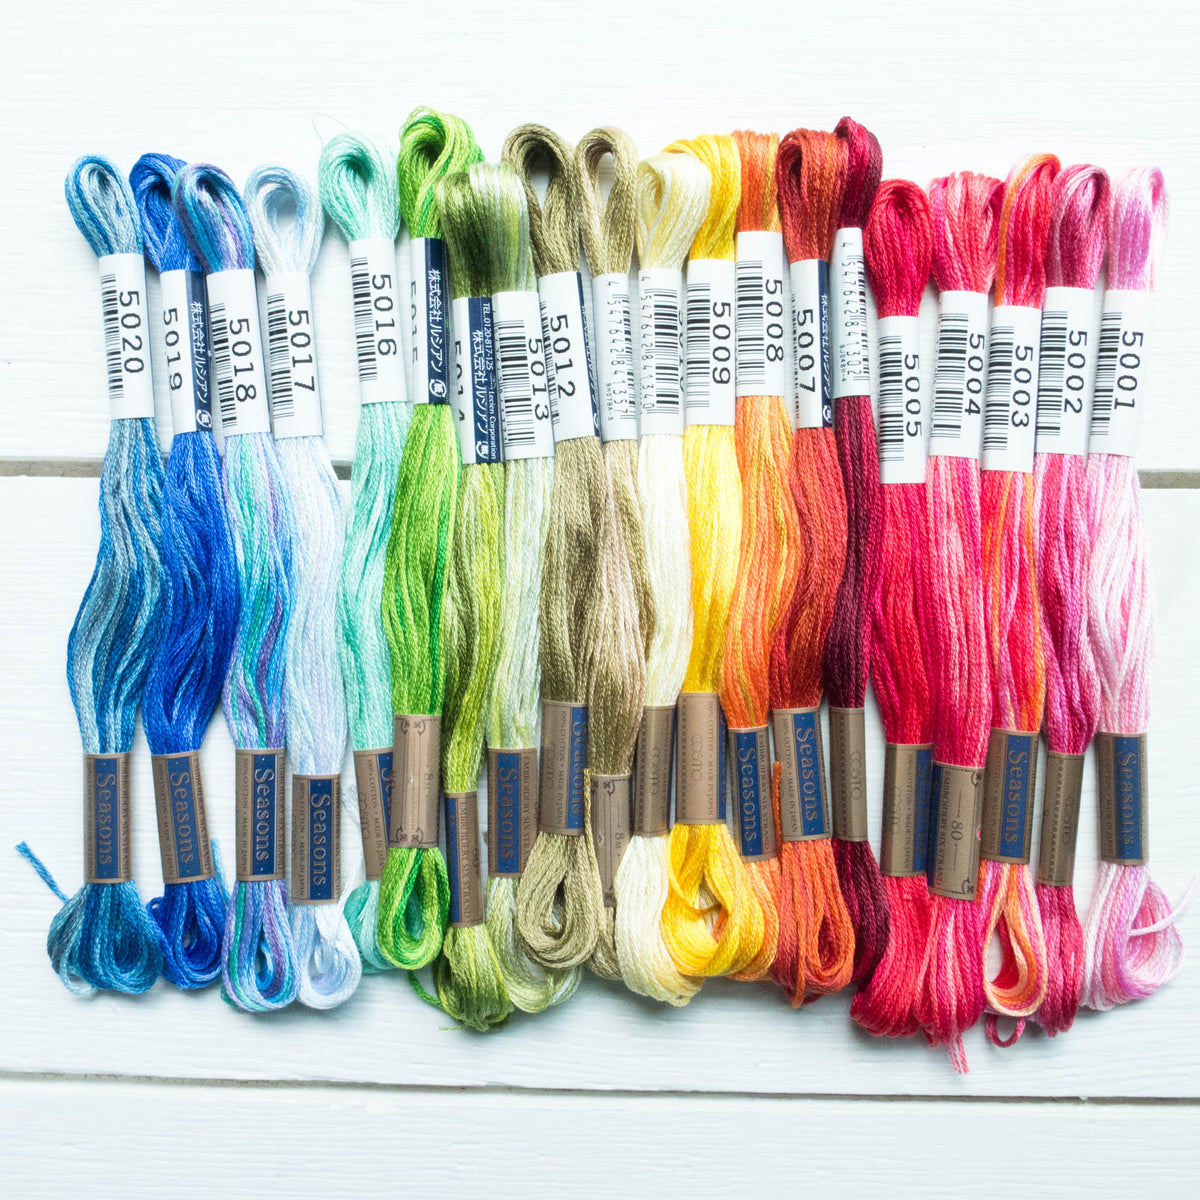 Cosmo Seasons Variegated Embroidery Floss Set - Rainbow Floss - Snuggly Monkey